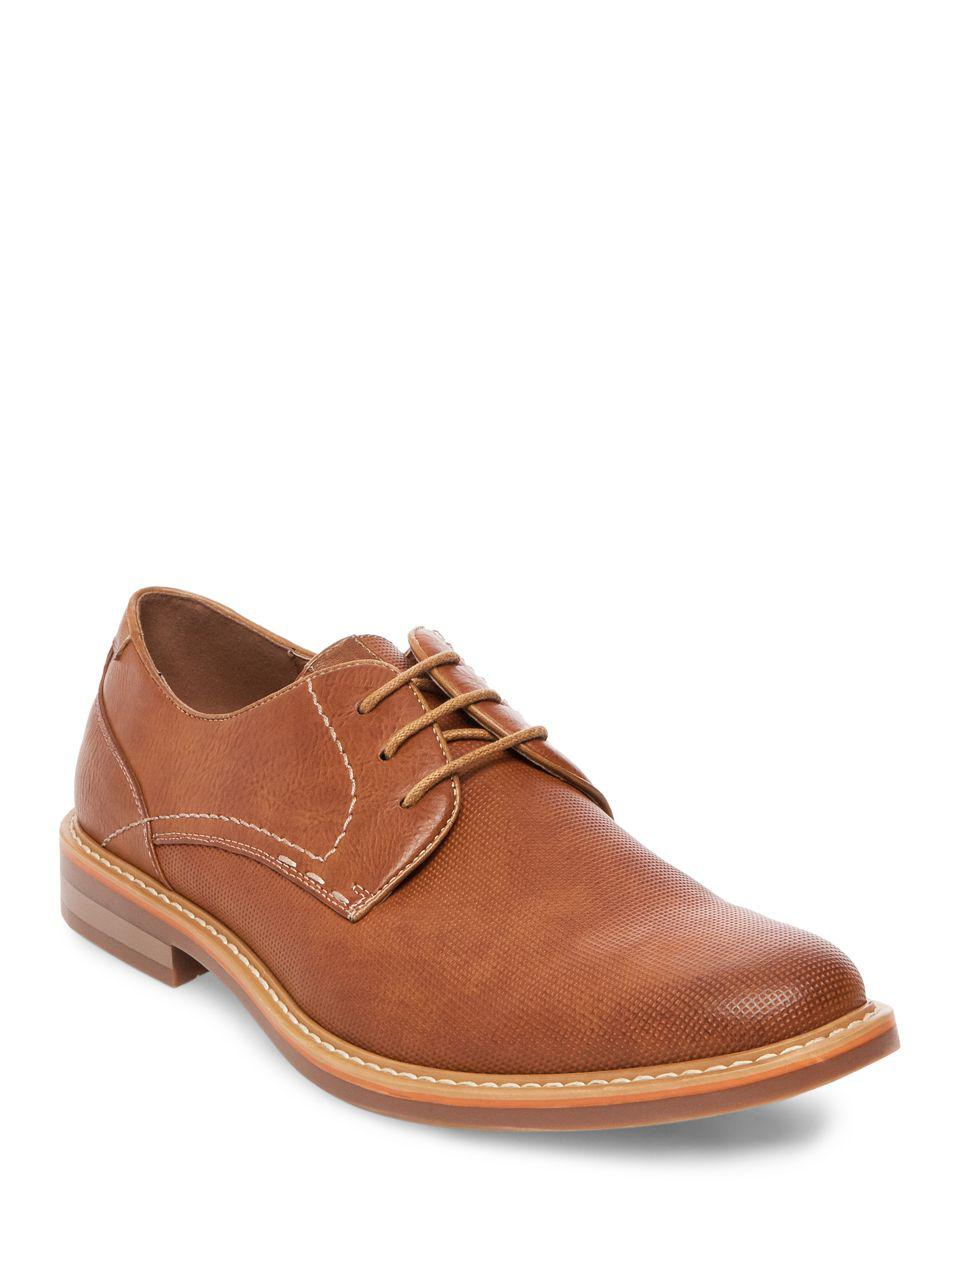 Steve Madden. Men's Brown Olivyr Plain-toe Oxfords